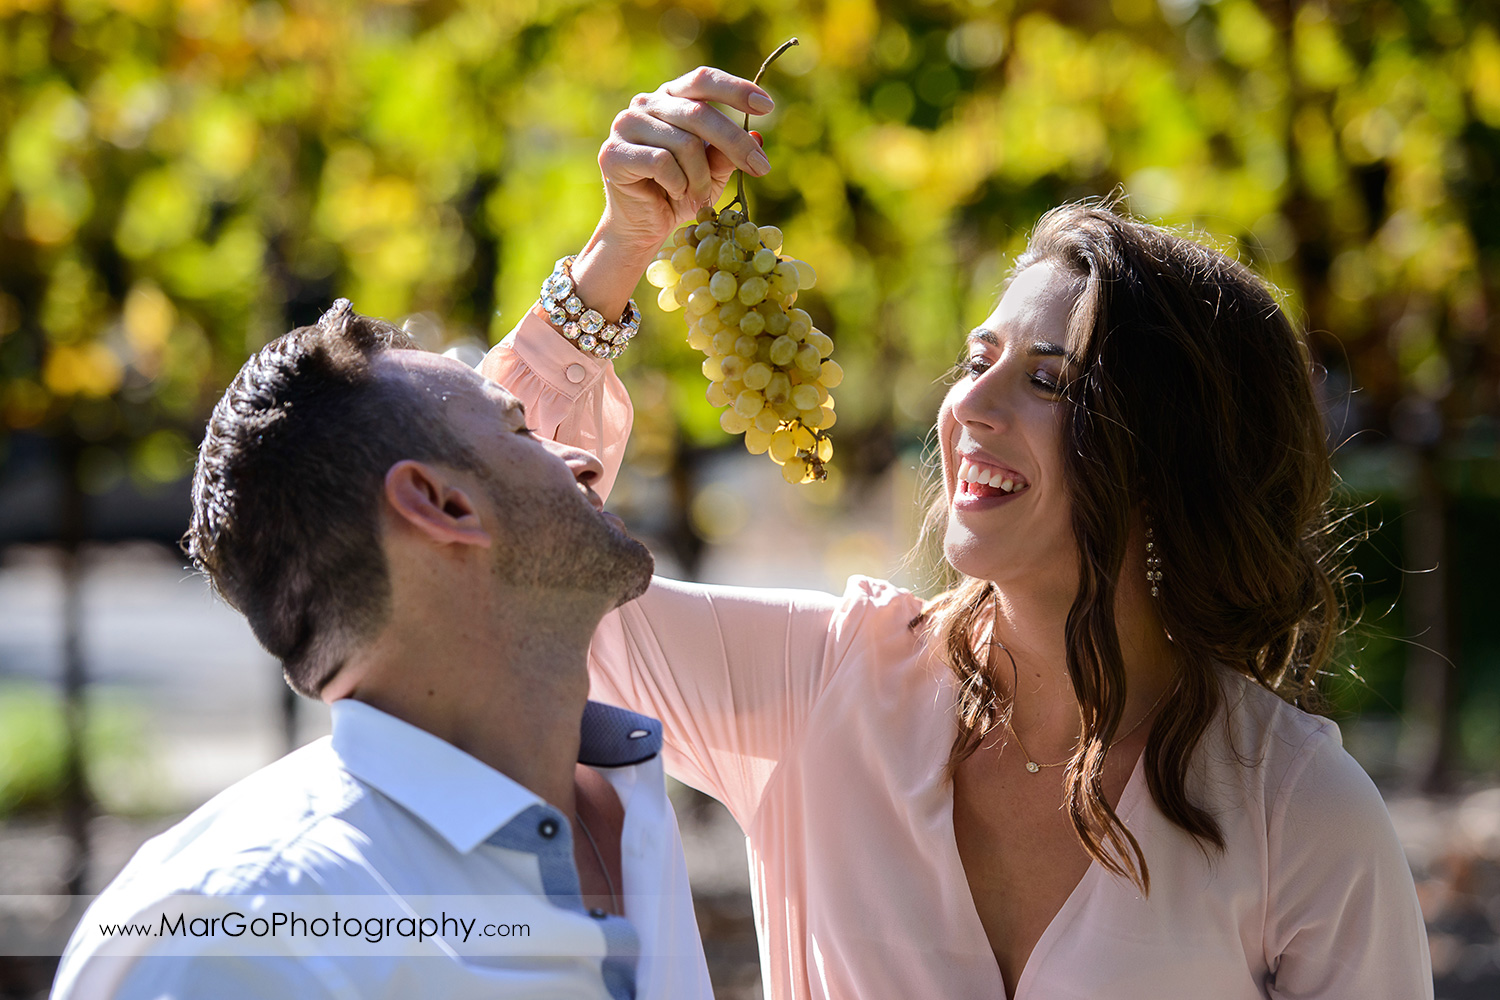 man in white shirt and woman in pink dress eating grapes during Napa Valley engagement session at Frank Family Vineyards in Calistoga